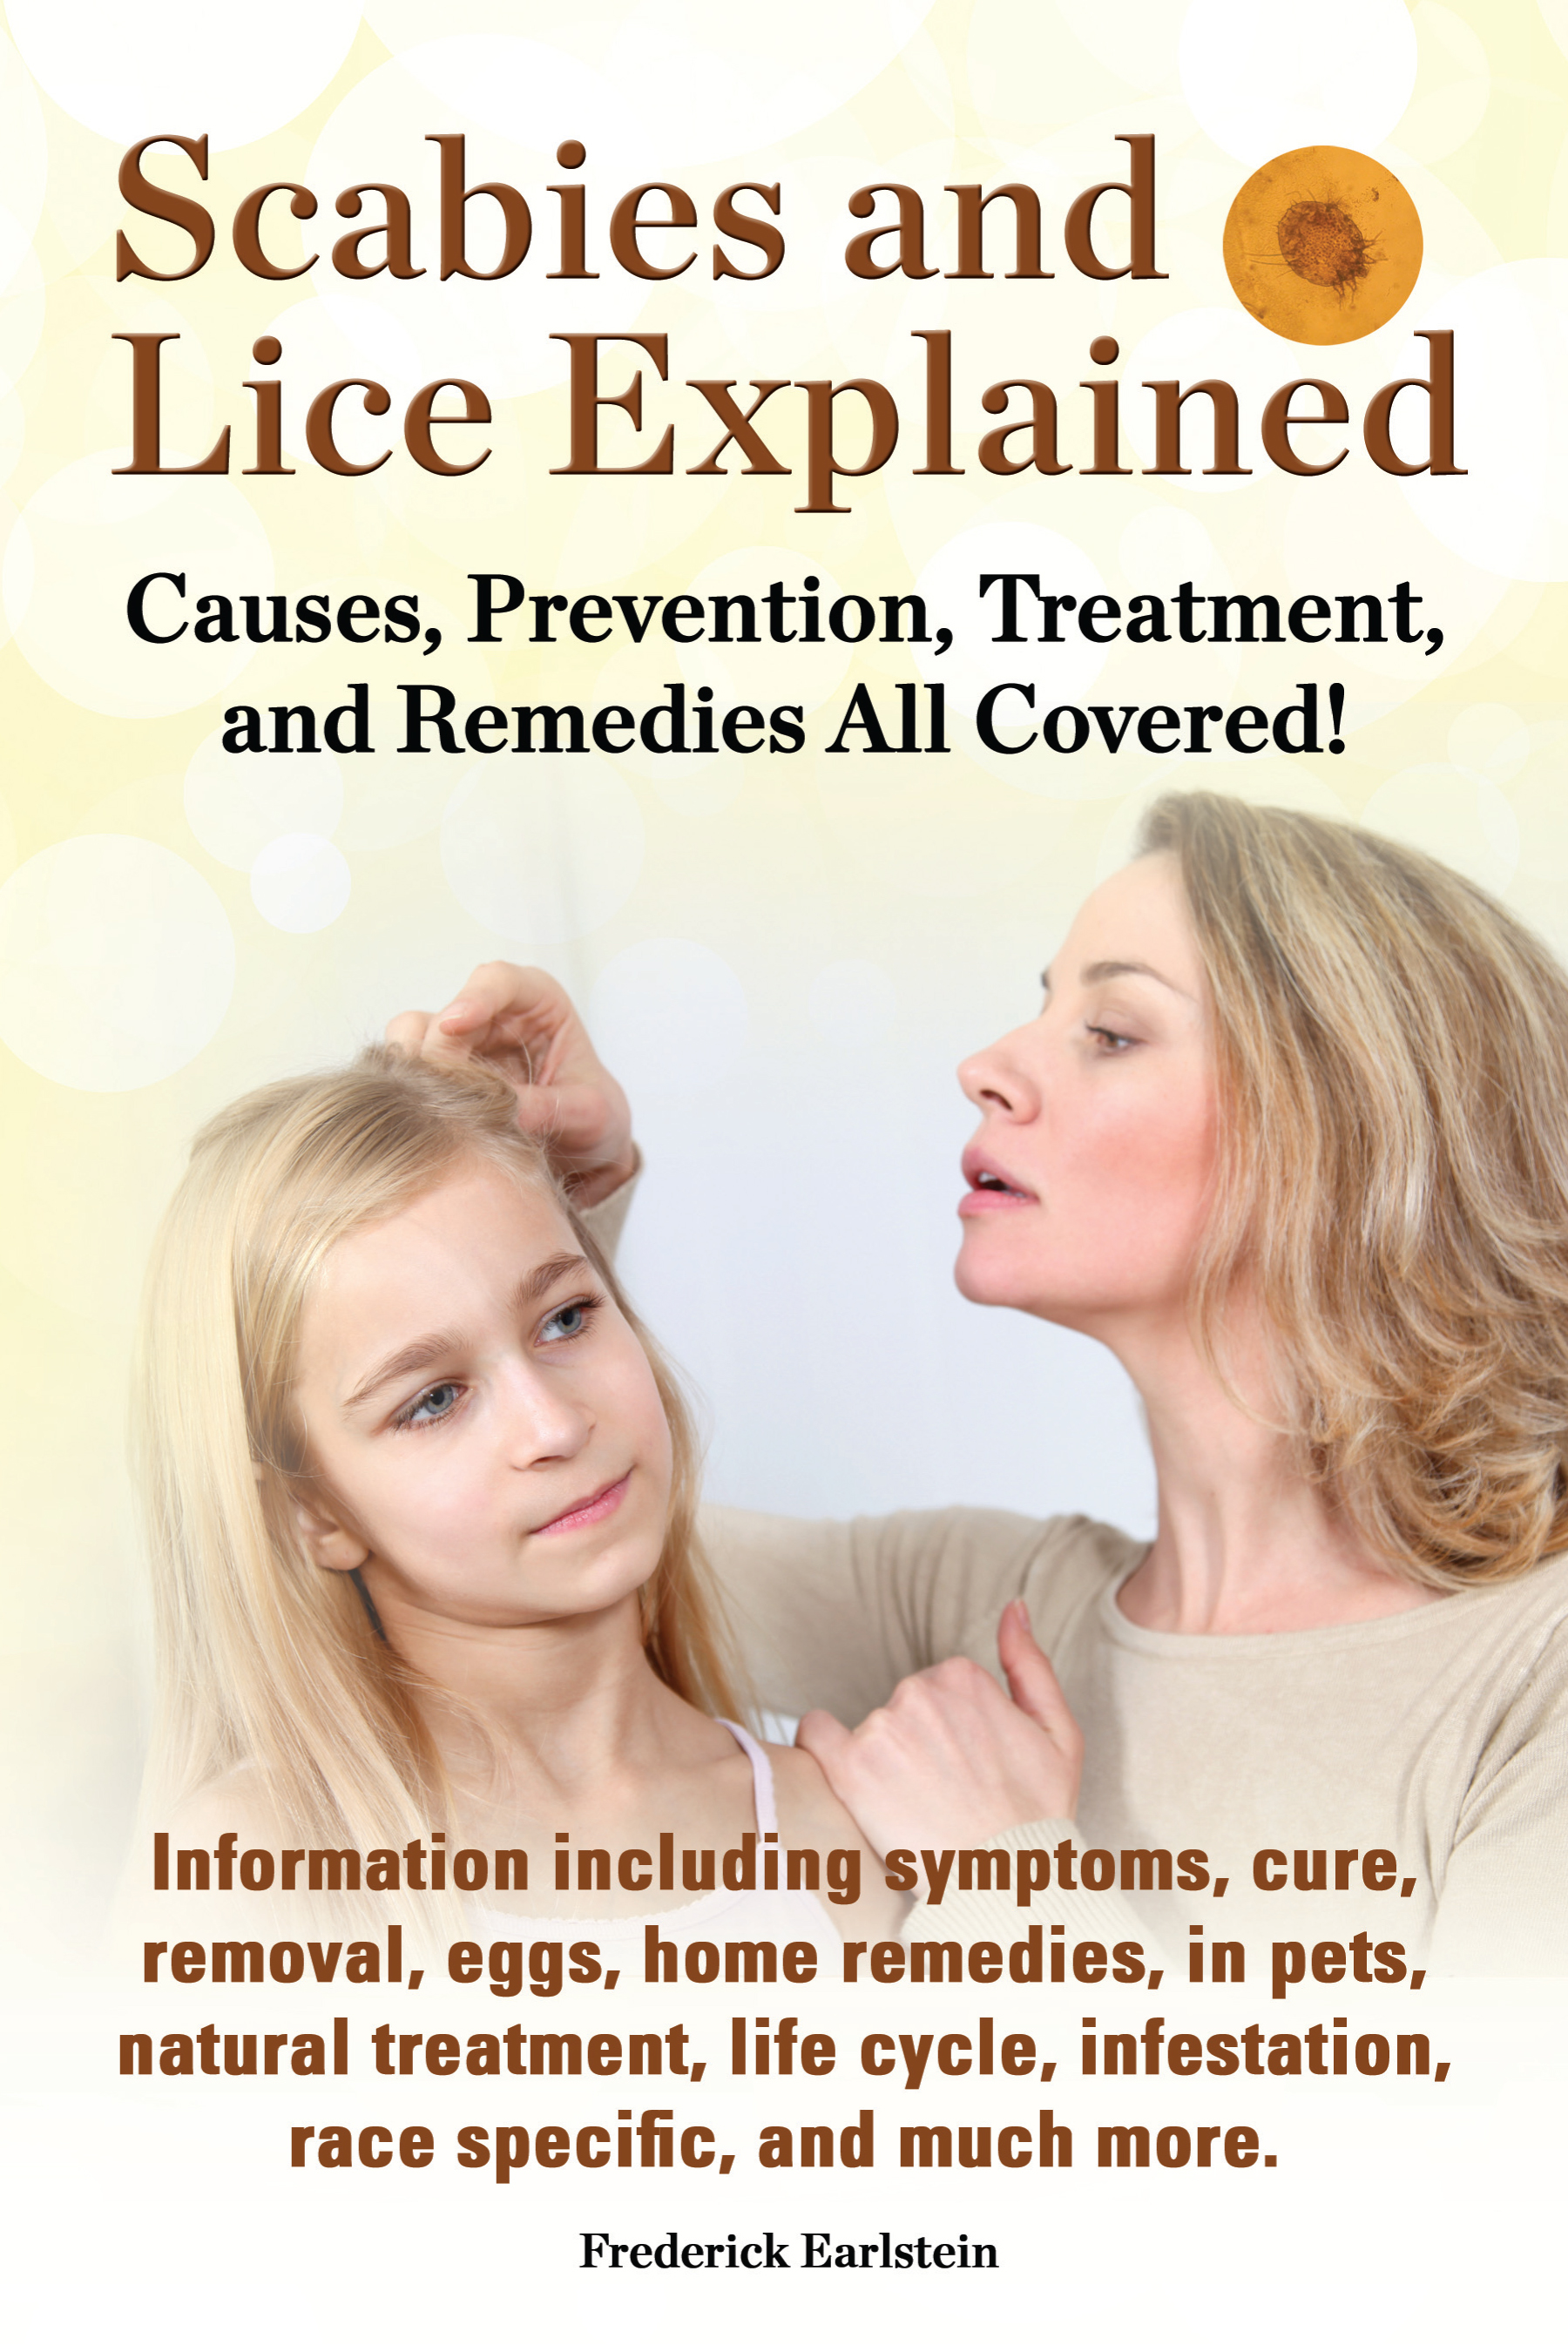 Scabies and Lice Explained, an Ebook by Frederick Earlstein